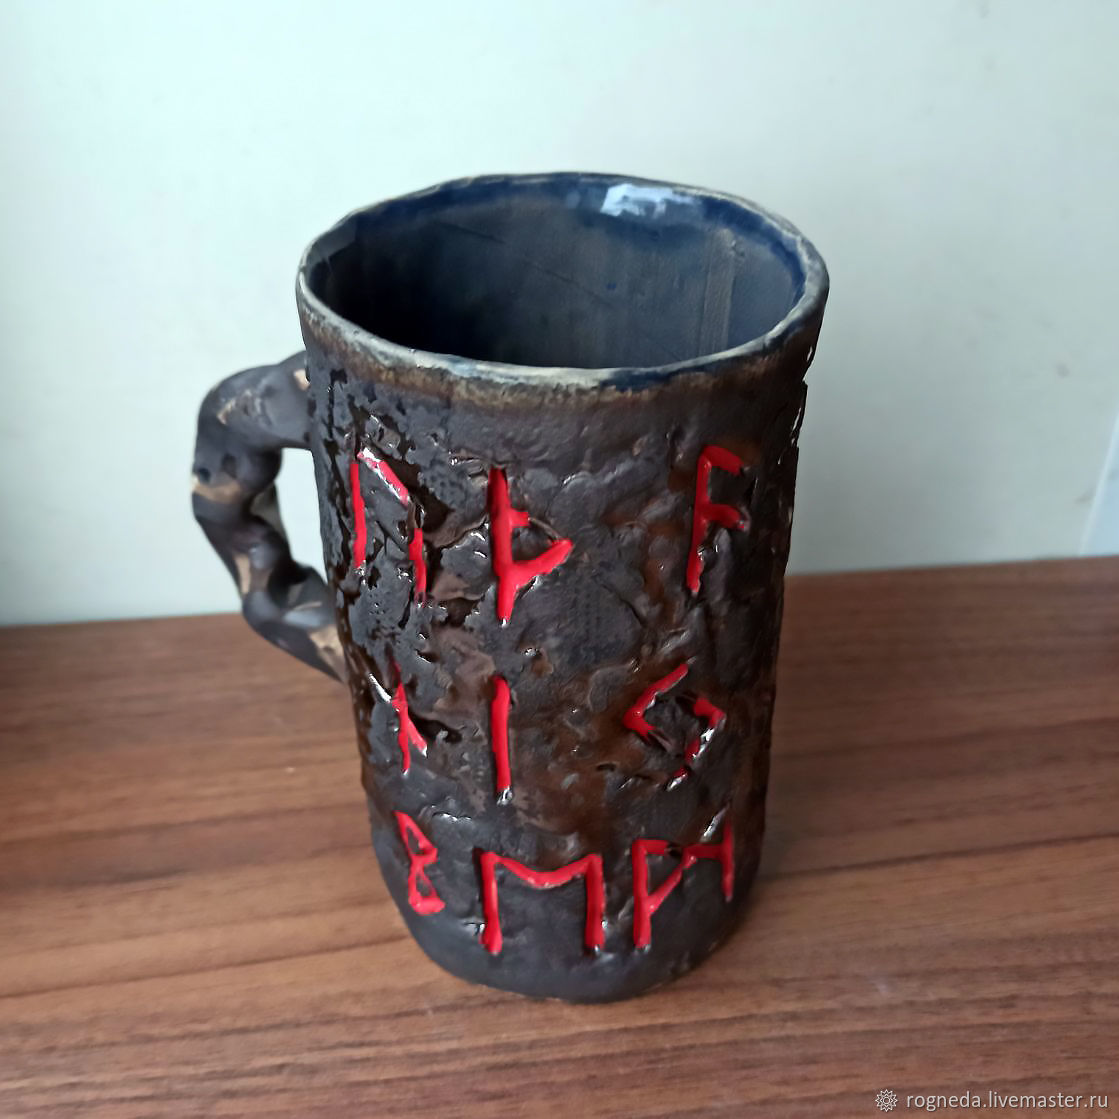 Futhark - large mug, Mugs and cups, Moscow,  Фото №1